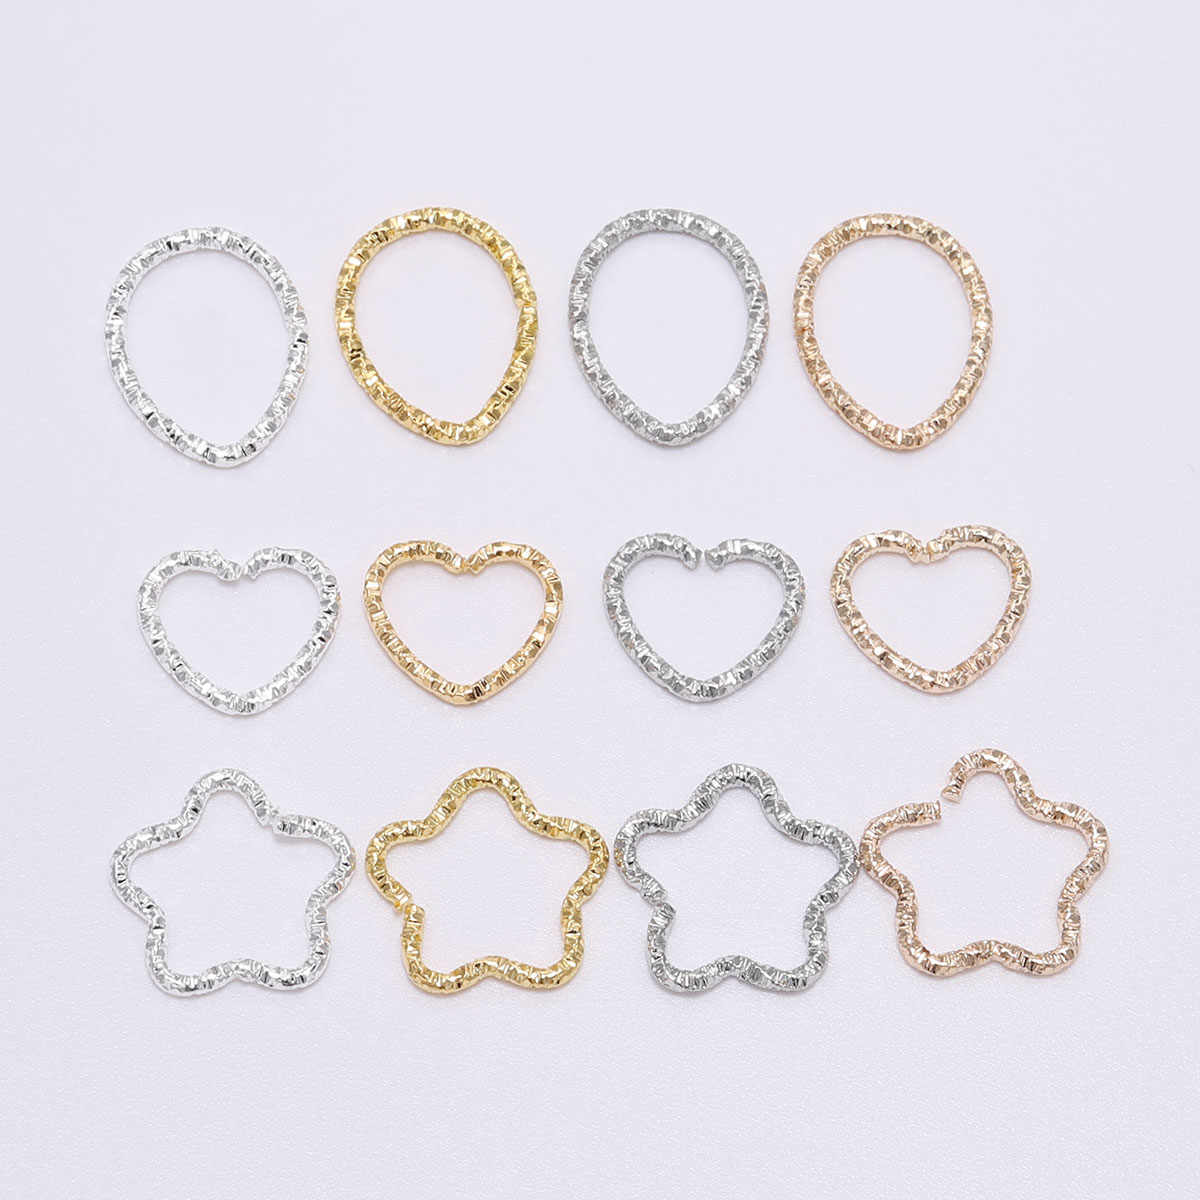 50pcs/lot 16.5mm New Style Silver Gold star Jump Rings Twisted Split Rings Spacer Connectors For Jewelry Making Making Supplies